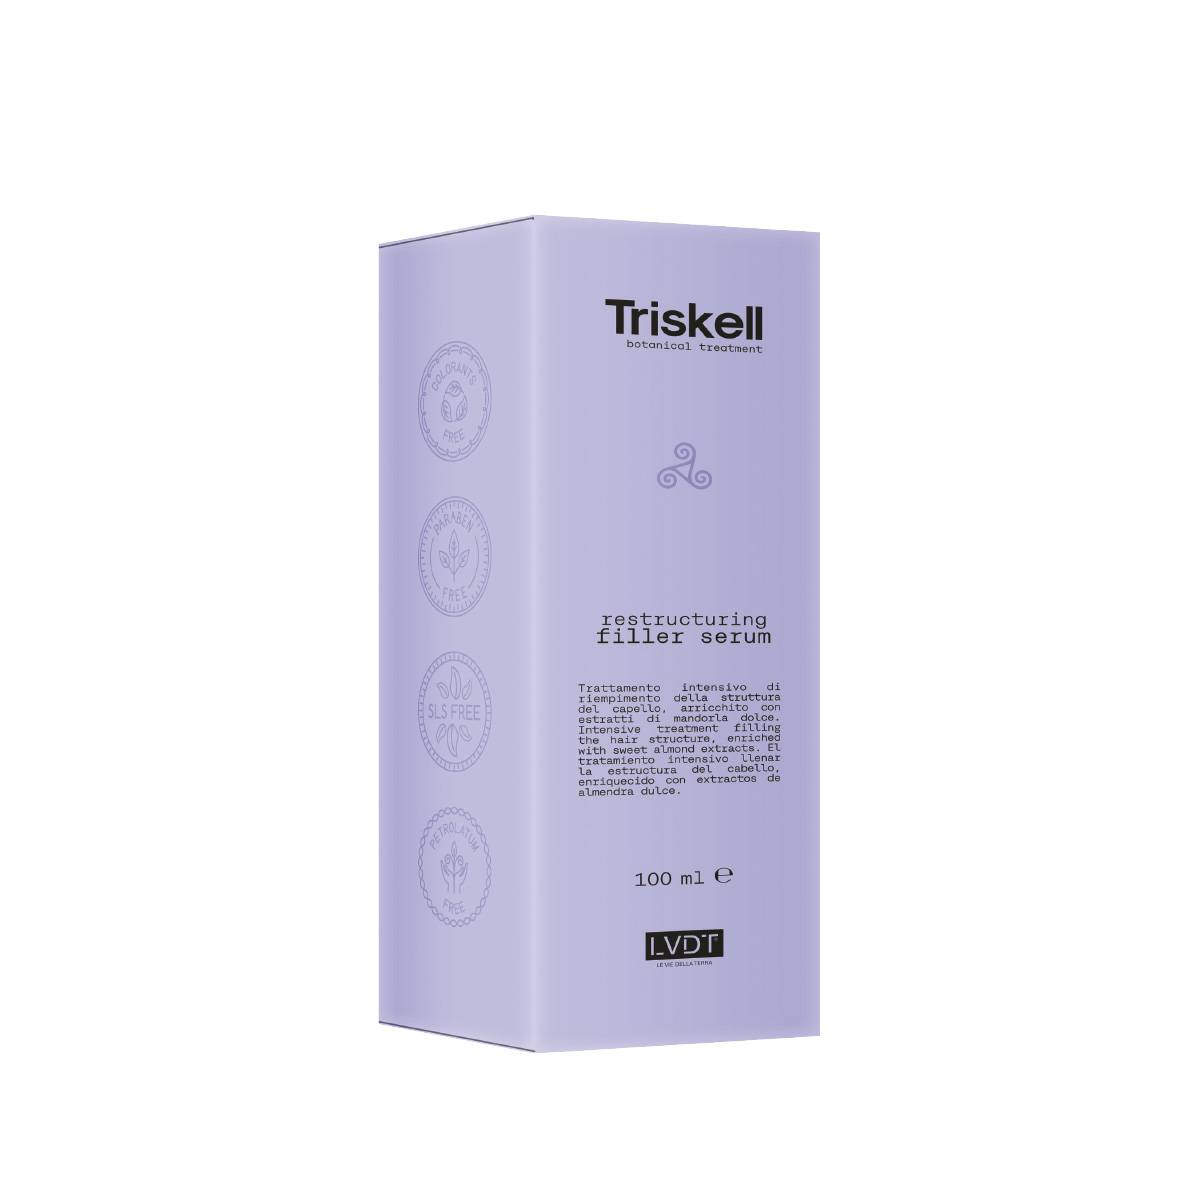 Triskell Filler Serum 100 Ml Restructuring